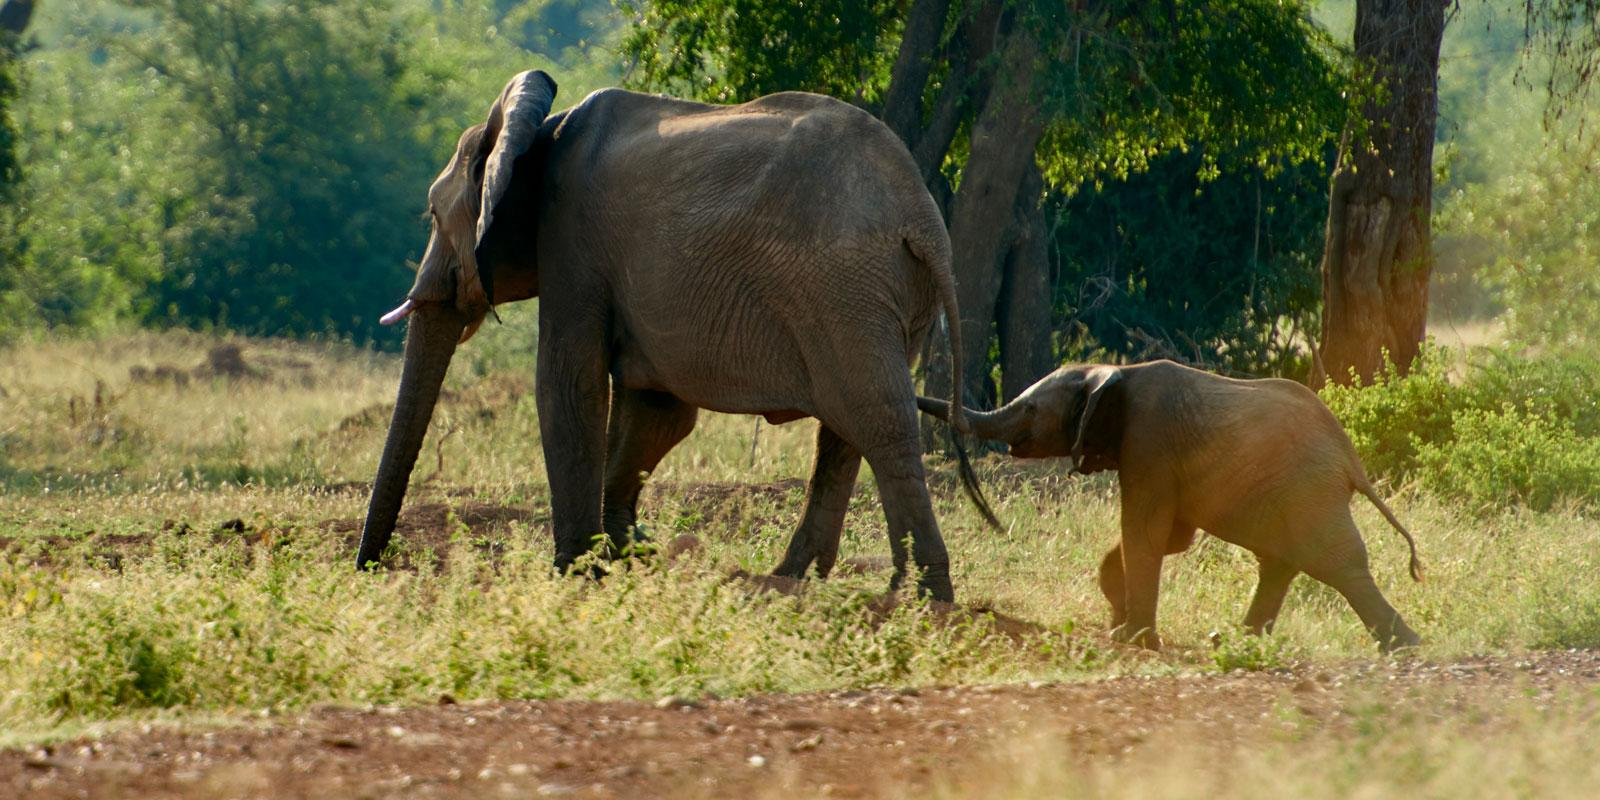 Two elephants, mother and child.